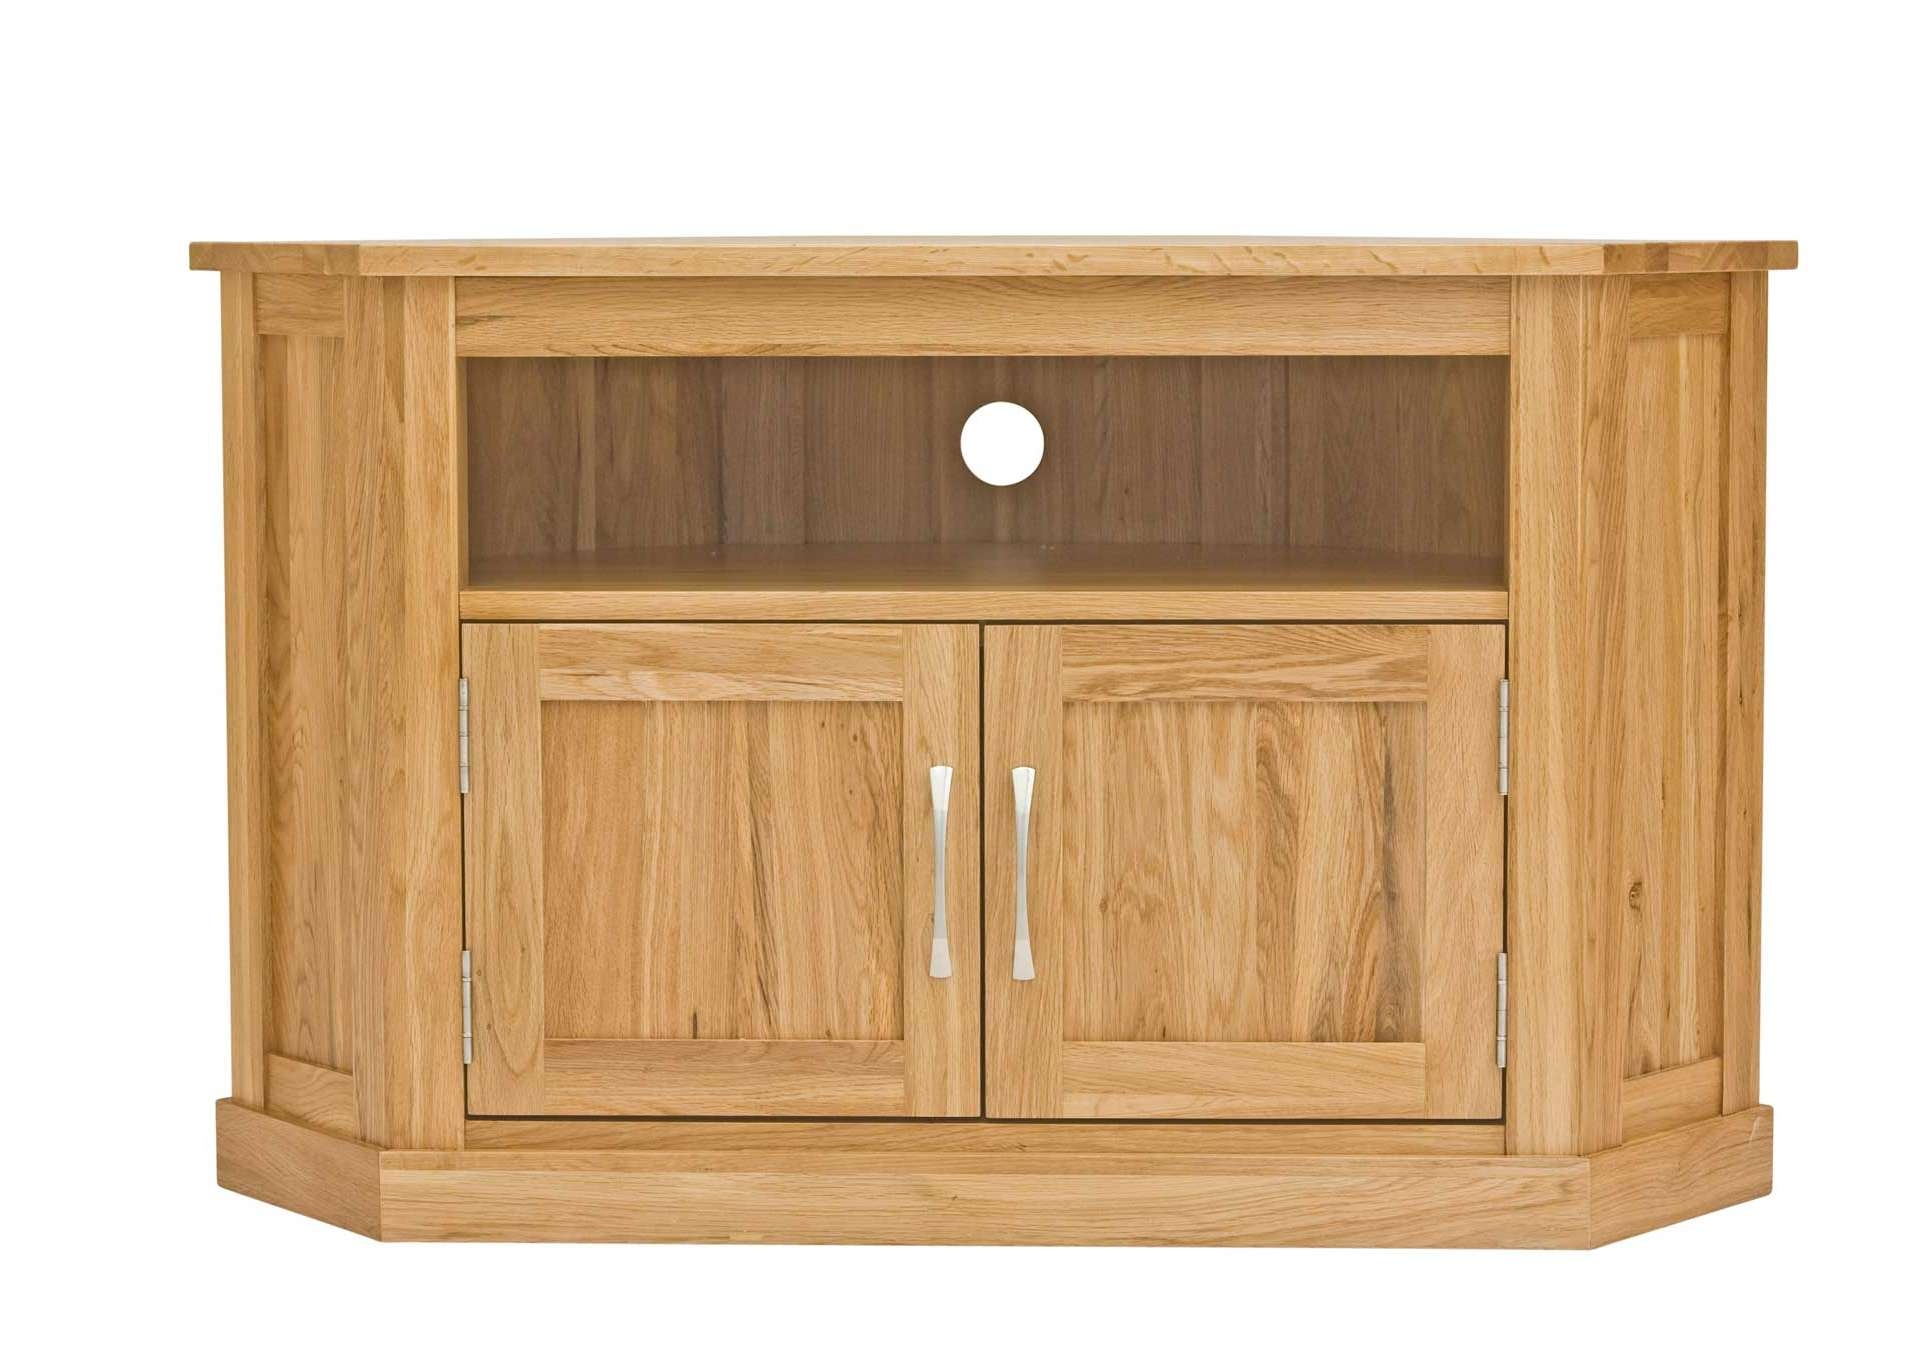 Classic Oak Corner Television Cabinet | Hampshire Furniture Within Solid Oak Corner Tv Cabinets (View 4 of 20)